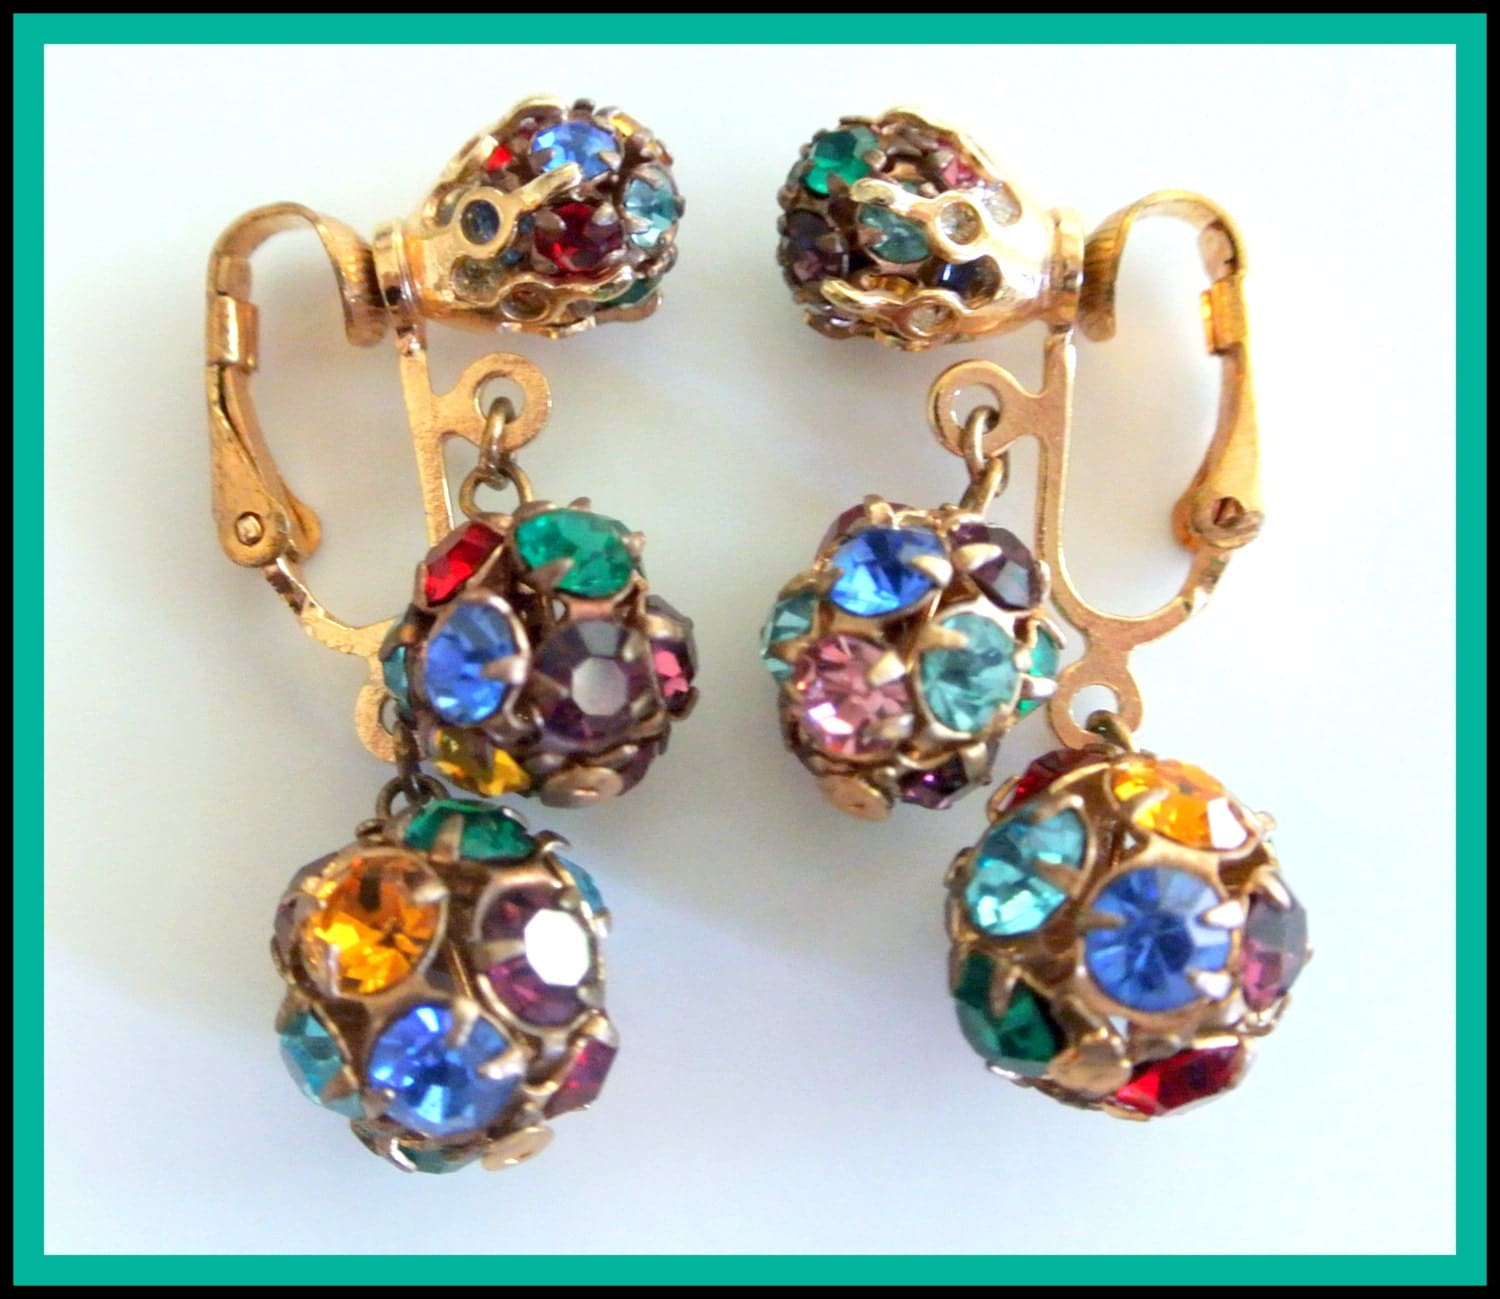 Vintage Multi Colored Rhinestone Ball Earrings - VintageObjectsShoppe